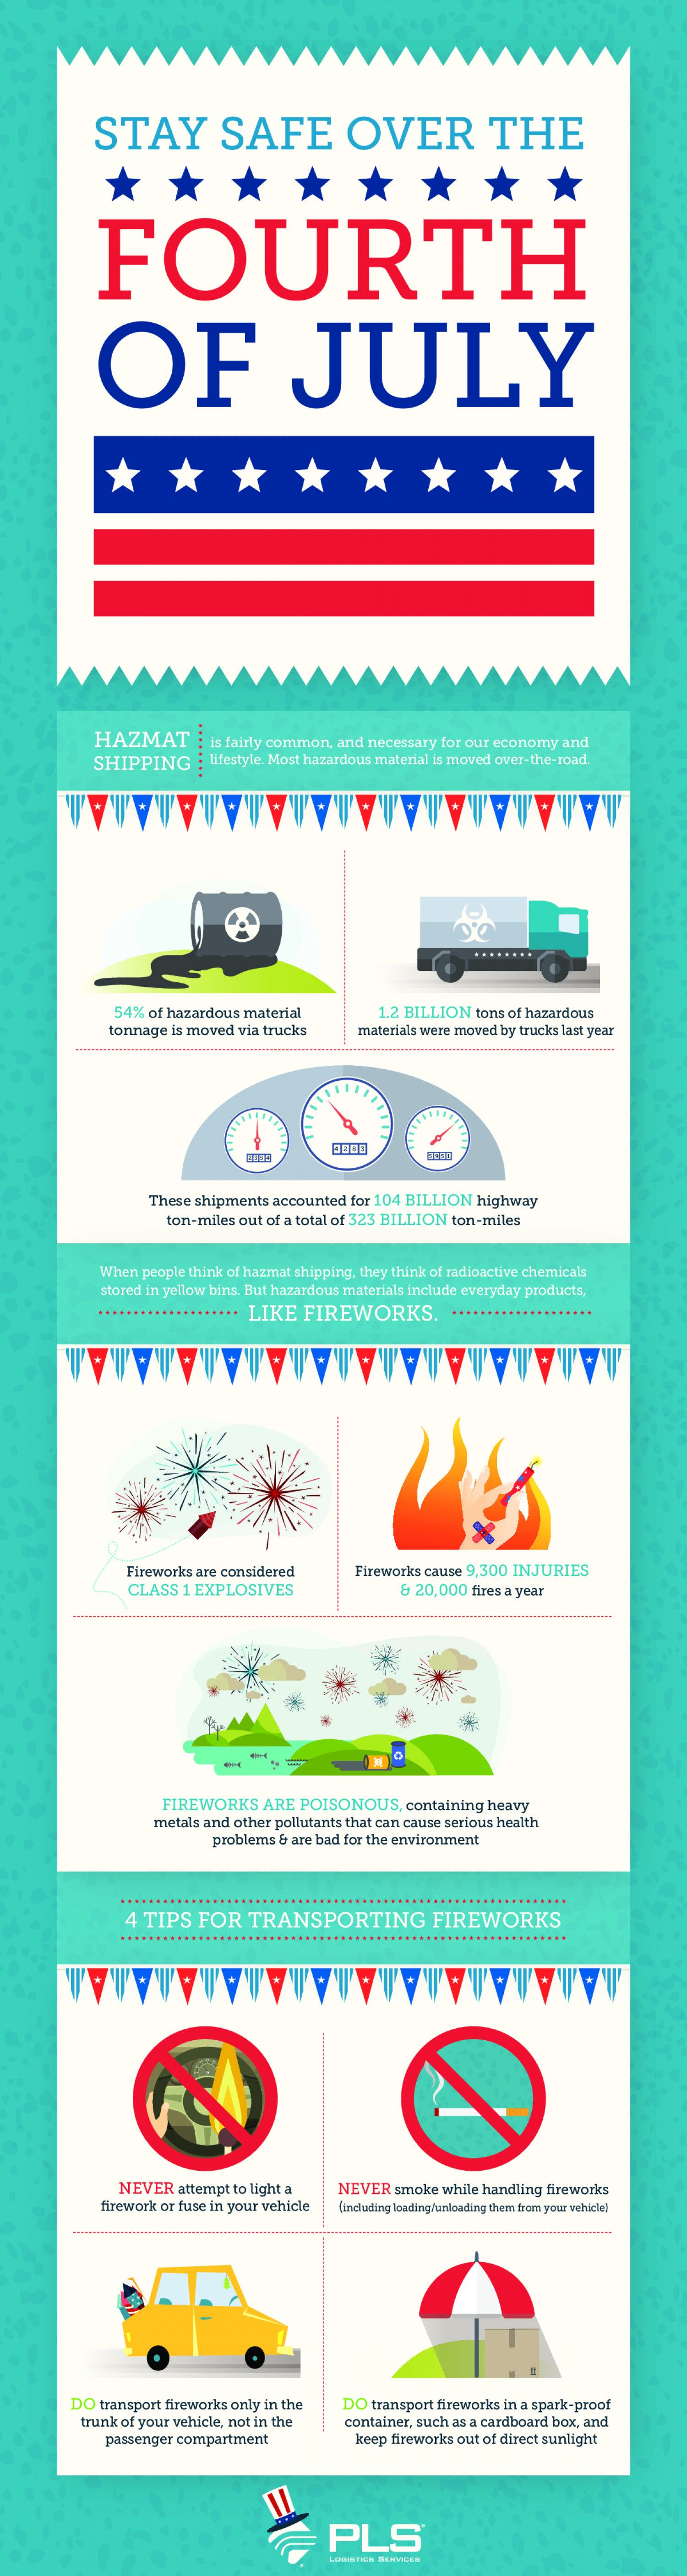 Fireworks and Hazardous Materials Infographic